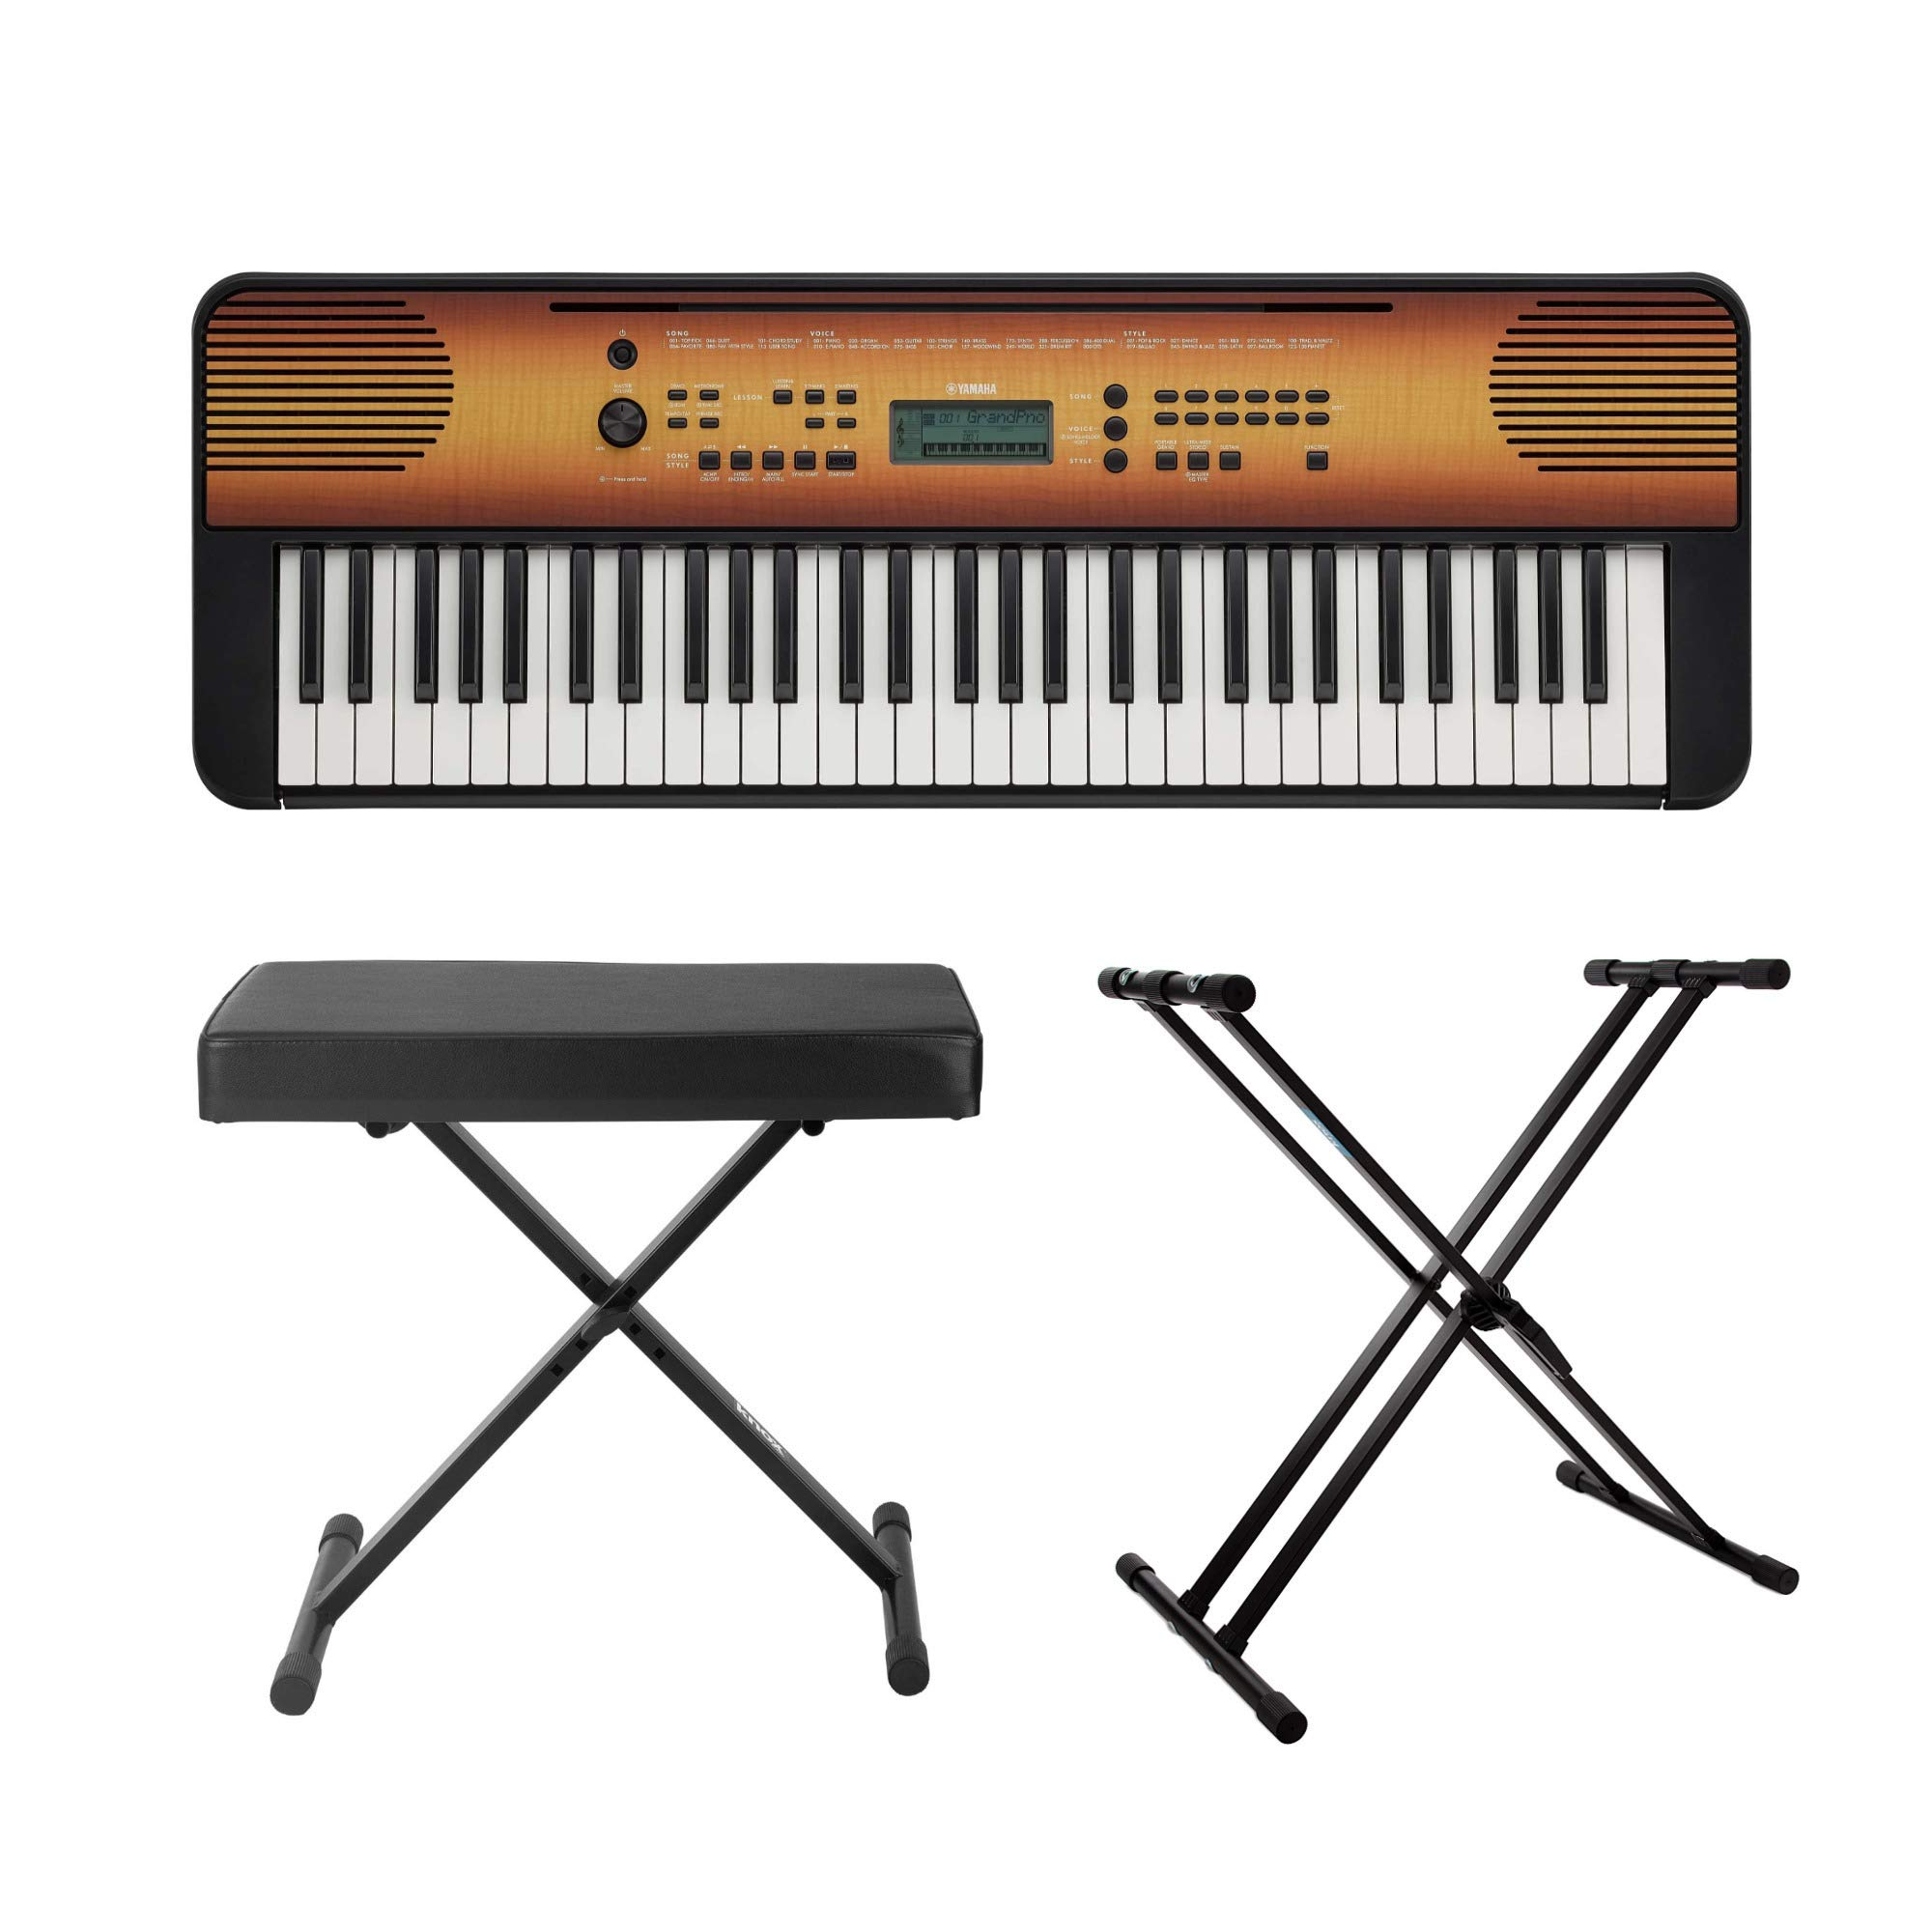 Yamaha PSRE360MA 61-Key Portable Keyboard Bundle with Knox Gear Keyboard Stand and Bench by YAMAHA